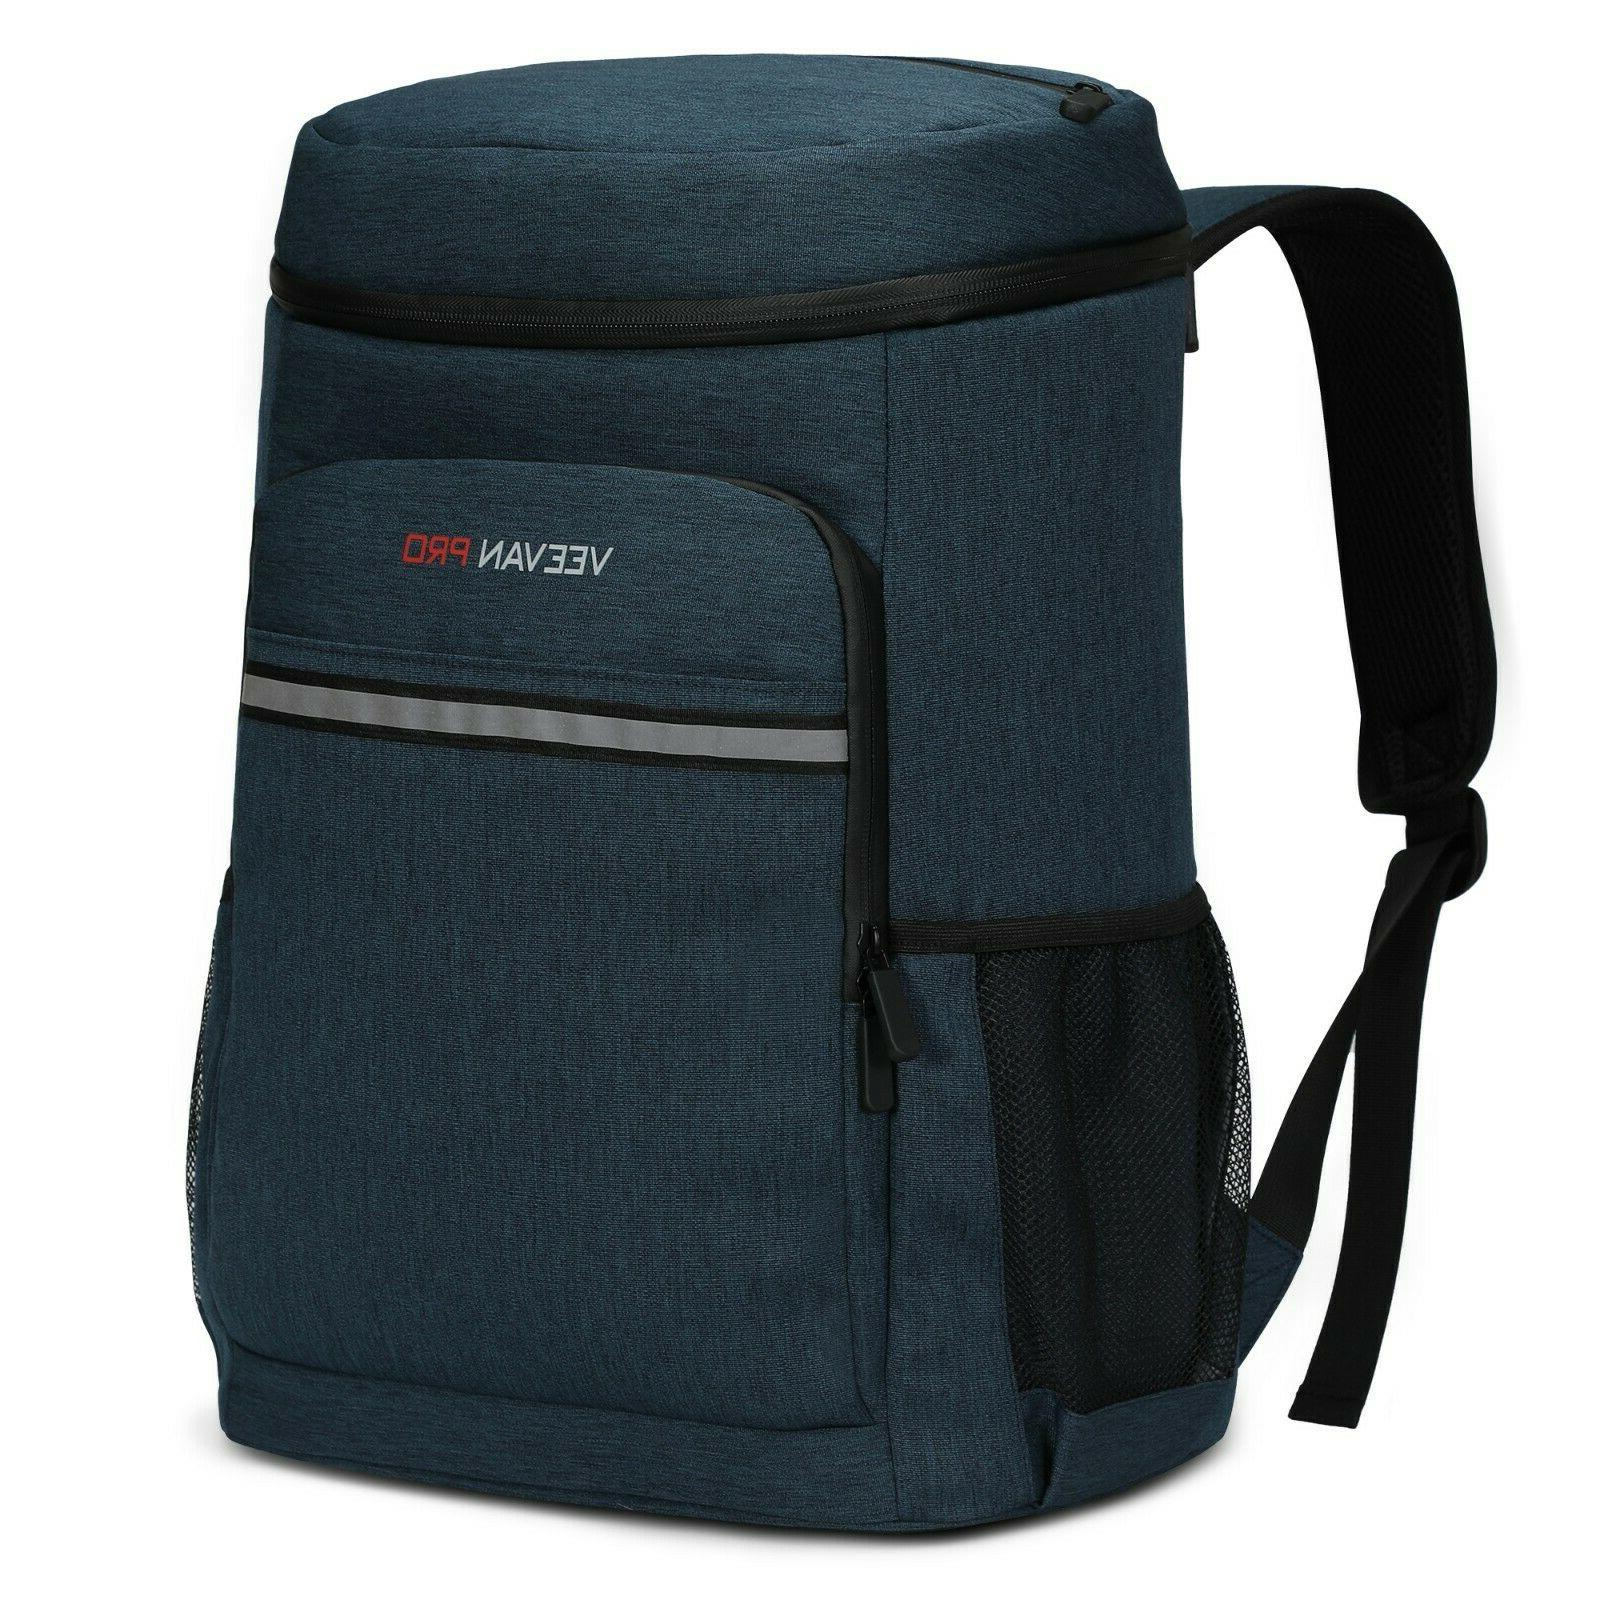 Leak-Proof 40 Cans Cooler Insulated Backpack Soft Cooler Bag